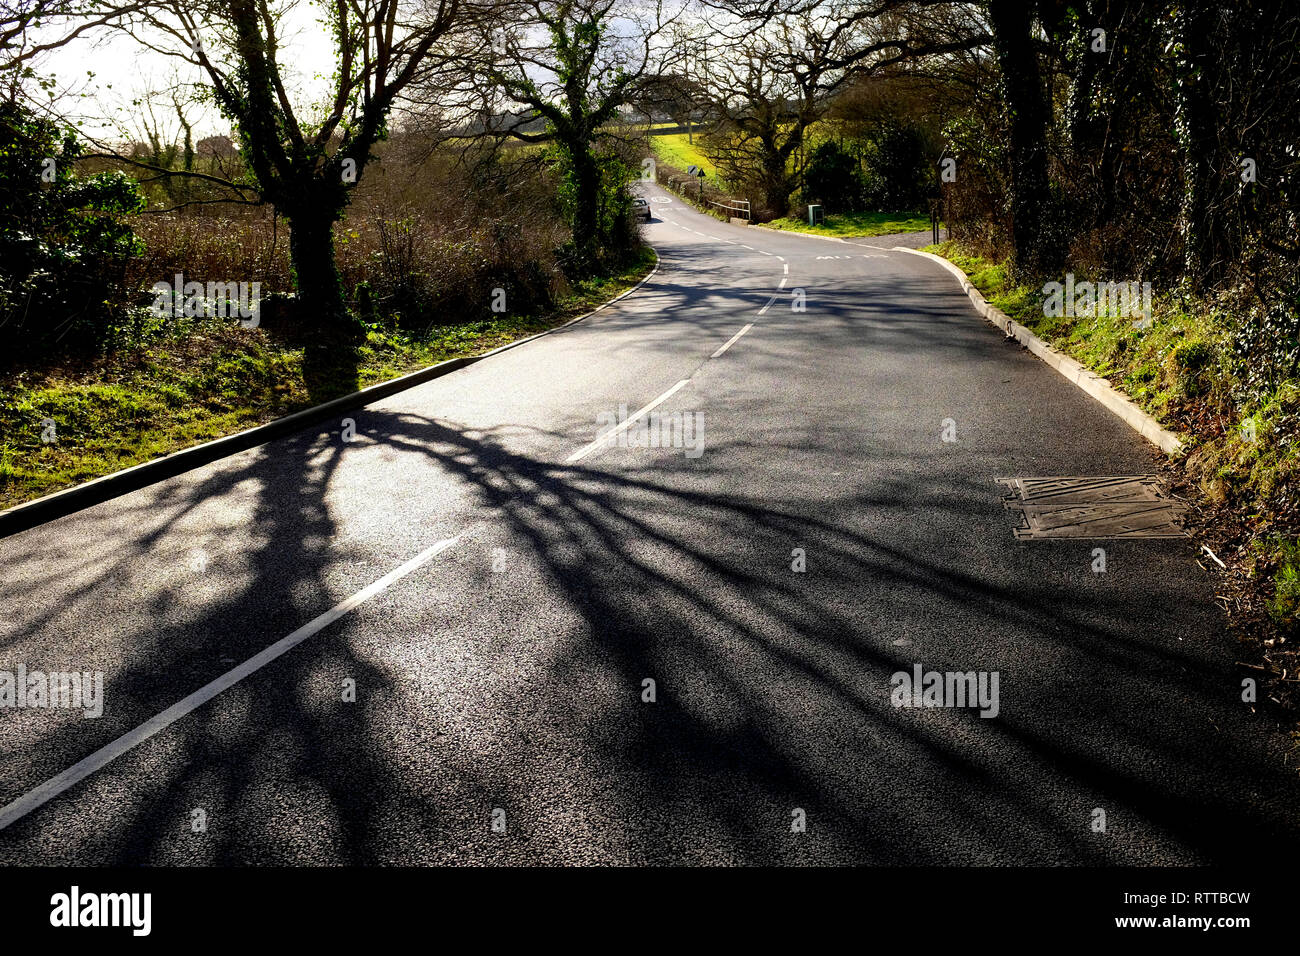 Newly laid road surface, rural, modern, technology, surface, surfaced, white, lines, tree, lined, shadow, - Stock Image